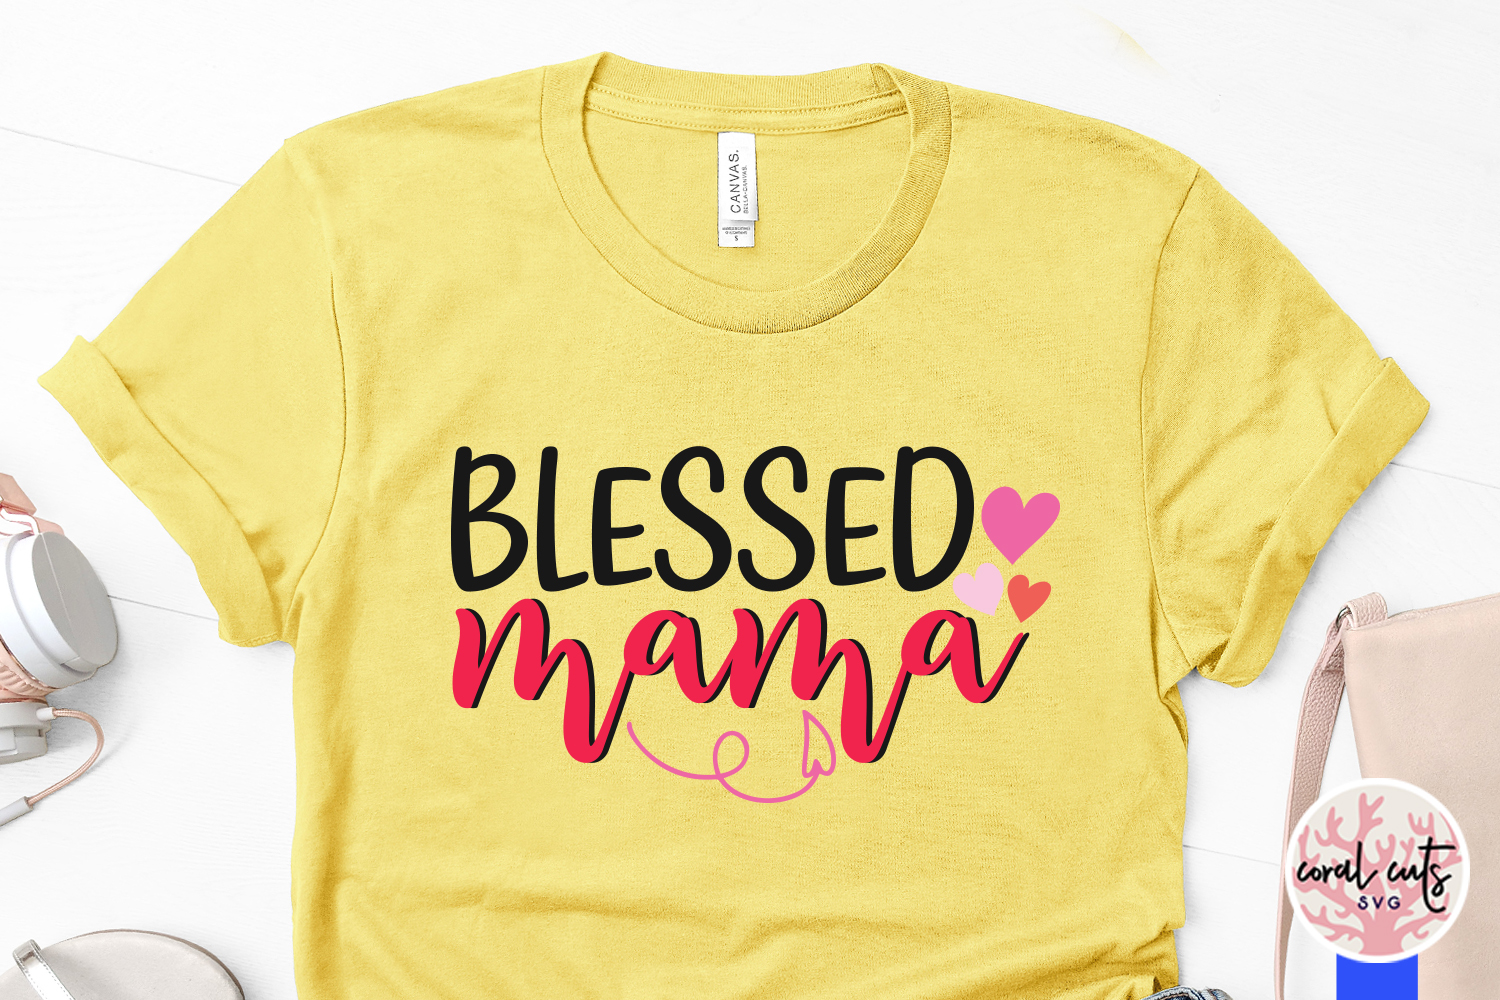 Blessed mama - Mother SVG EPS DXF PNG File example image 3